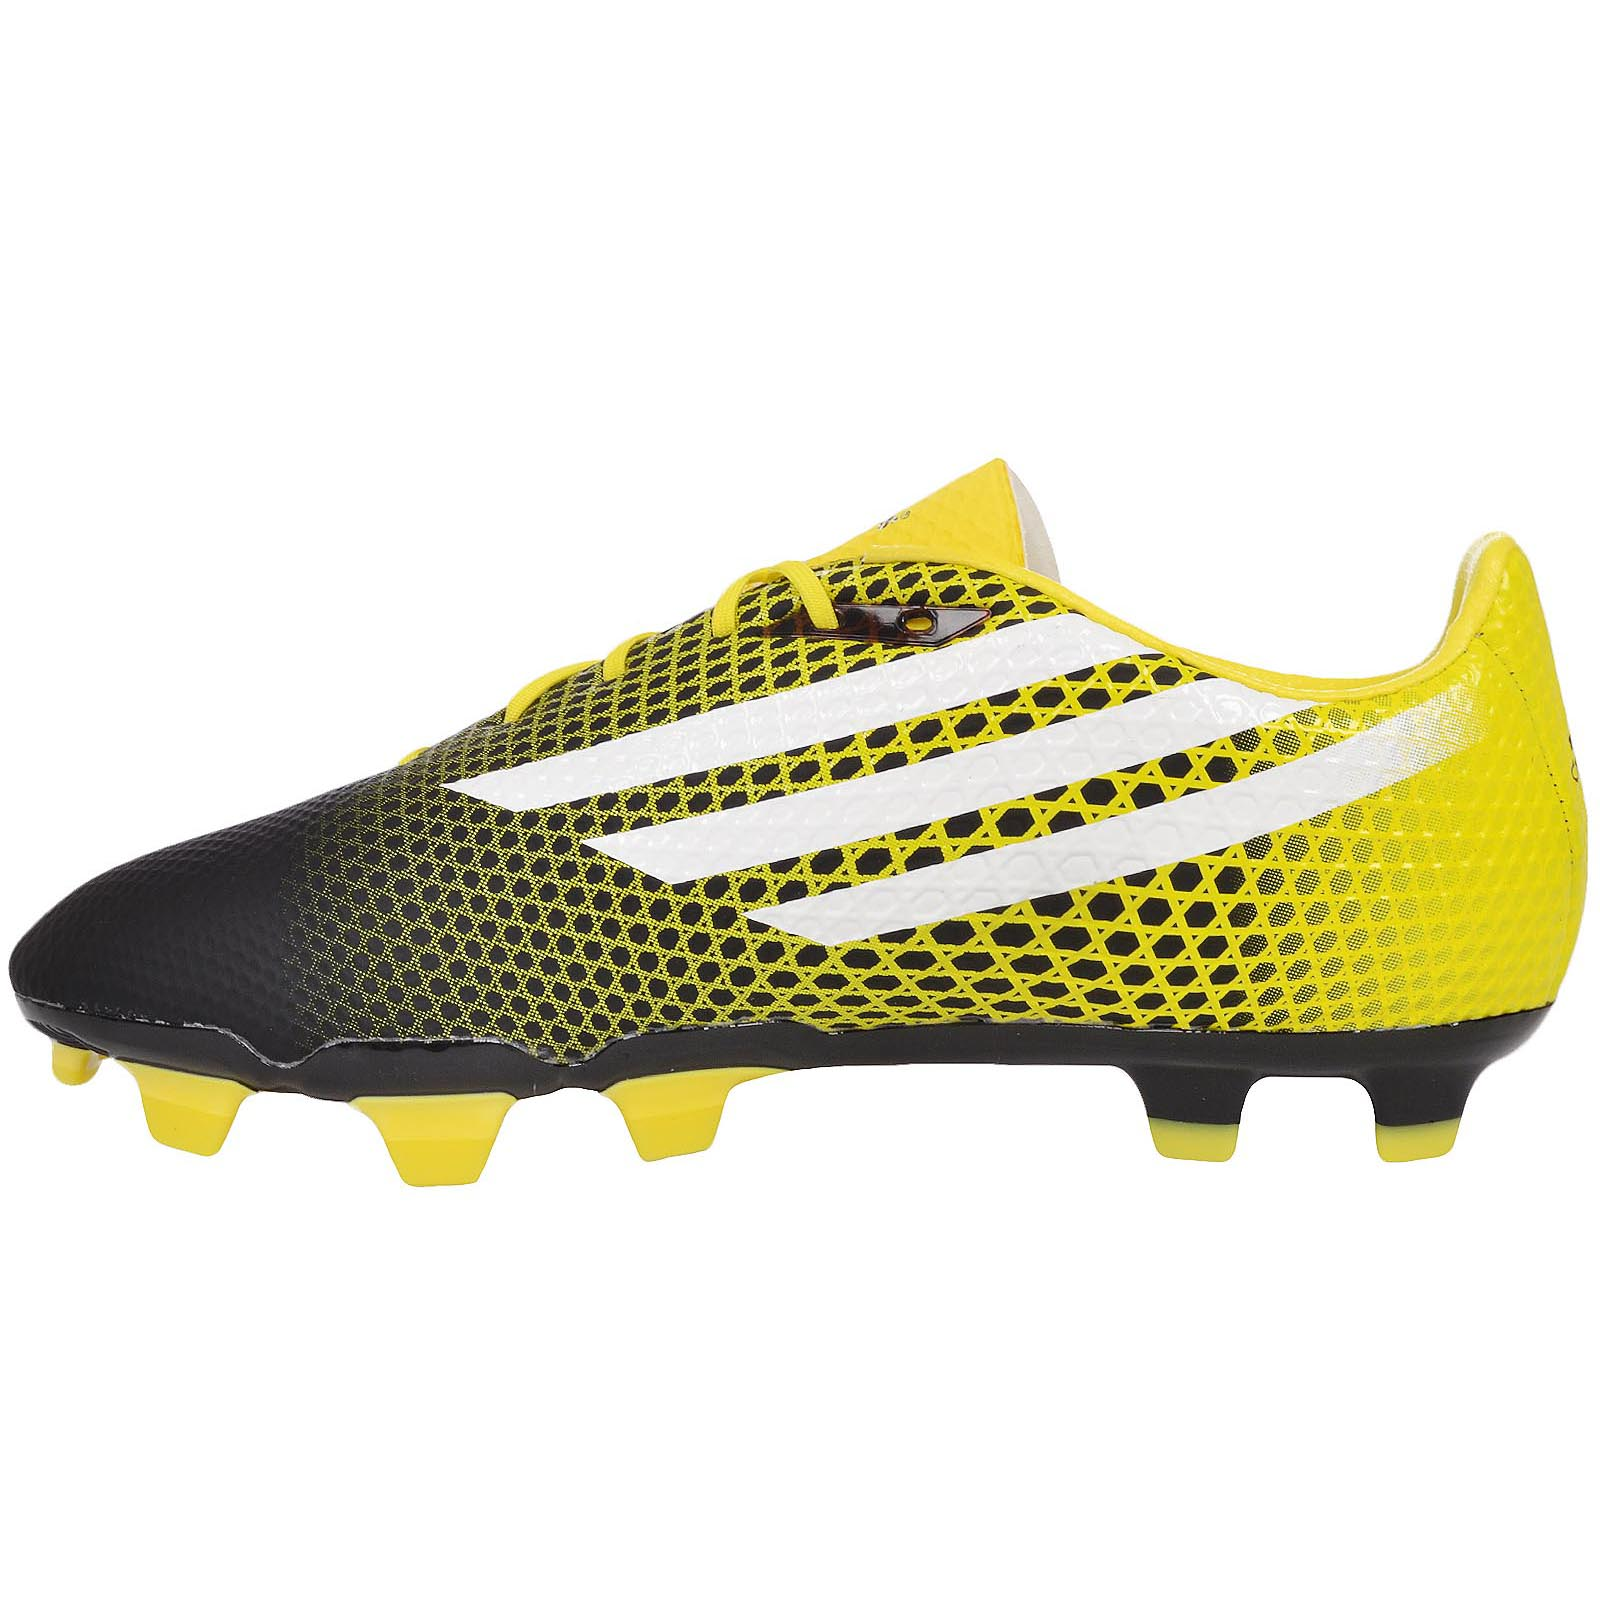 adidas Crazyquick Malice FG Rugby BOOTS 8  f7f560a33